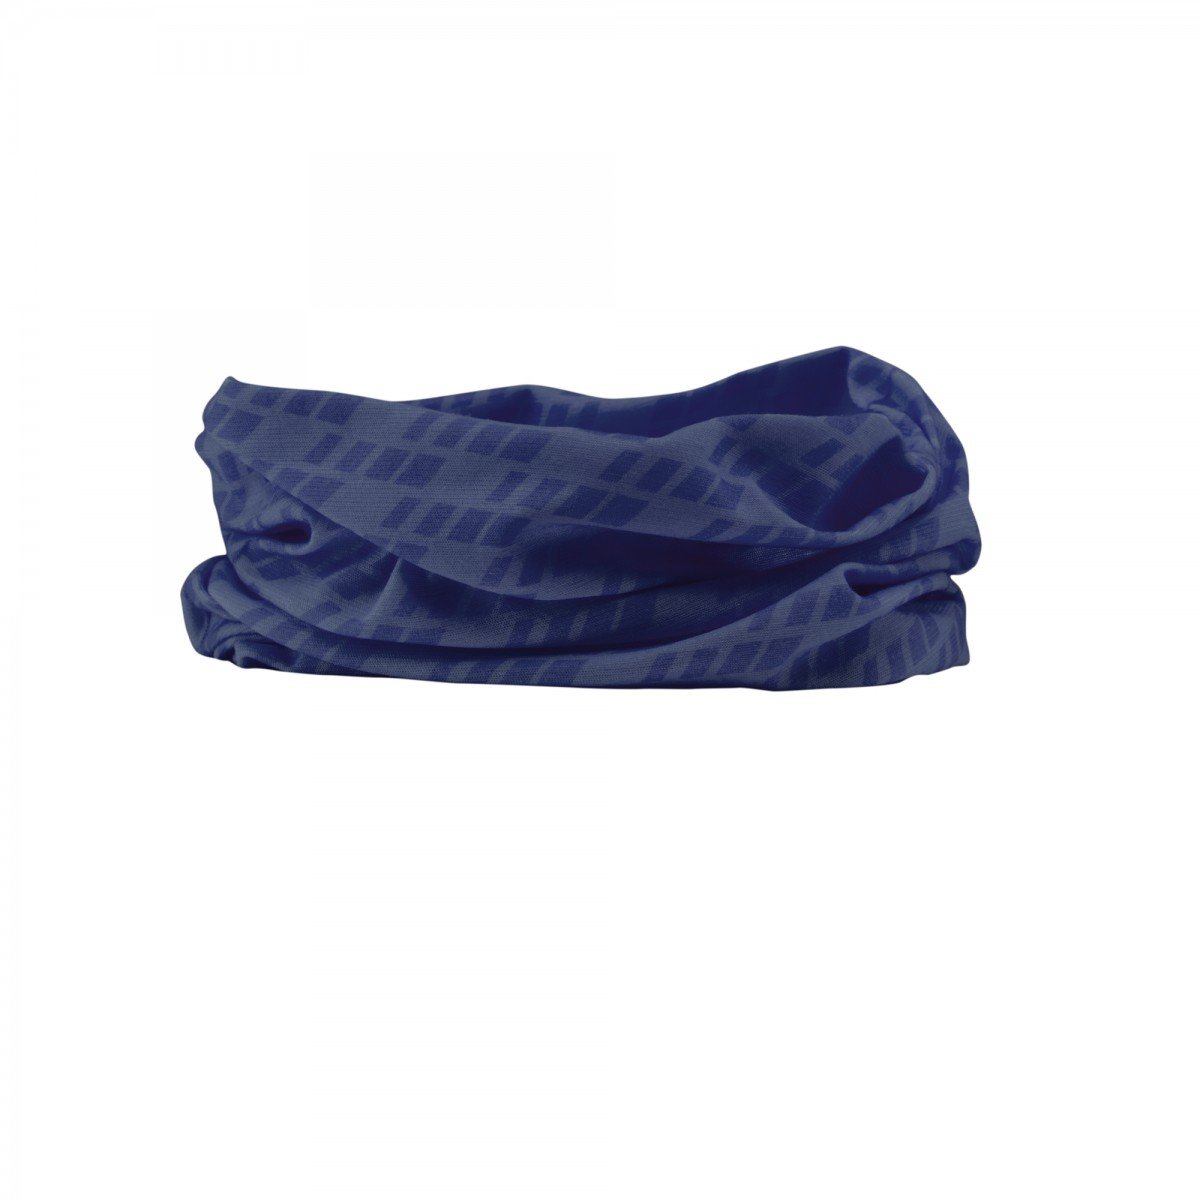 EAN-code: 5708486008897 Product: GRIPGRAB MULTIFUNCTIONAL NECK WARMER NAVY ONESIZE (Part-No: 503959207) at cycleXperience.nl